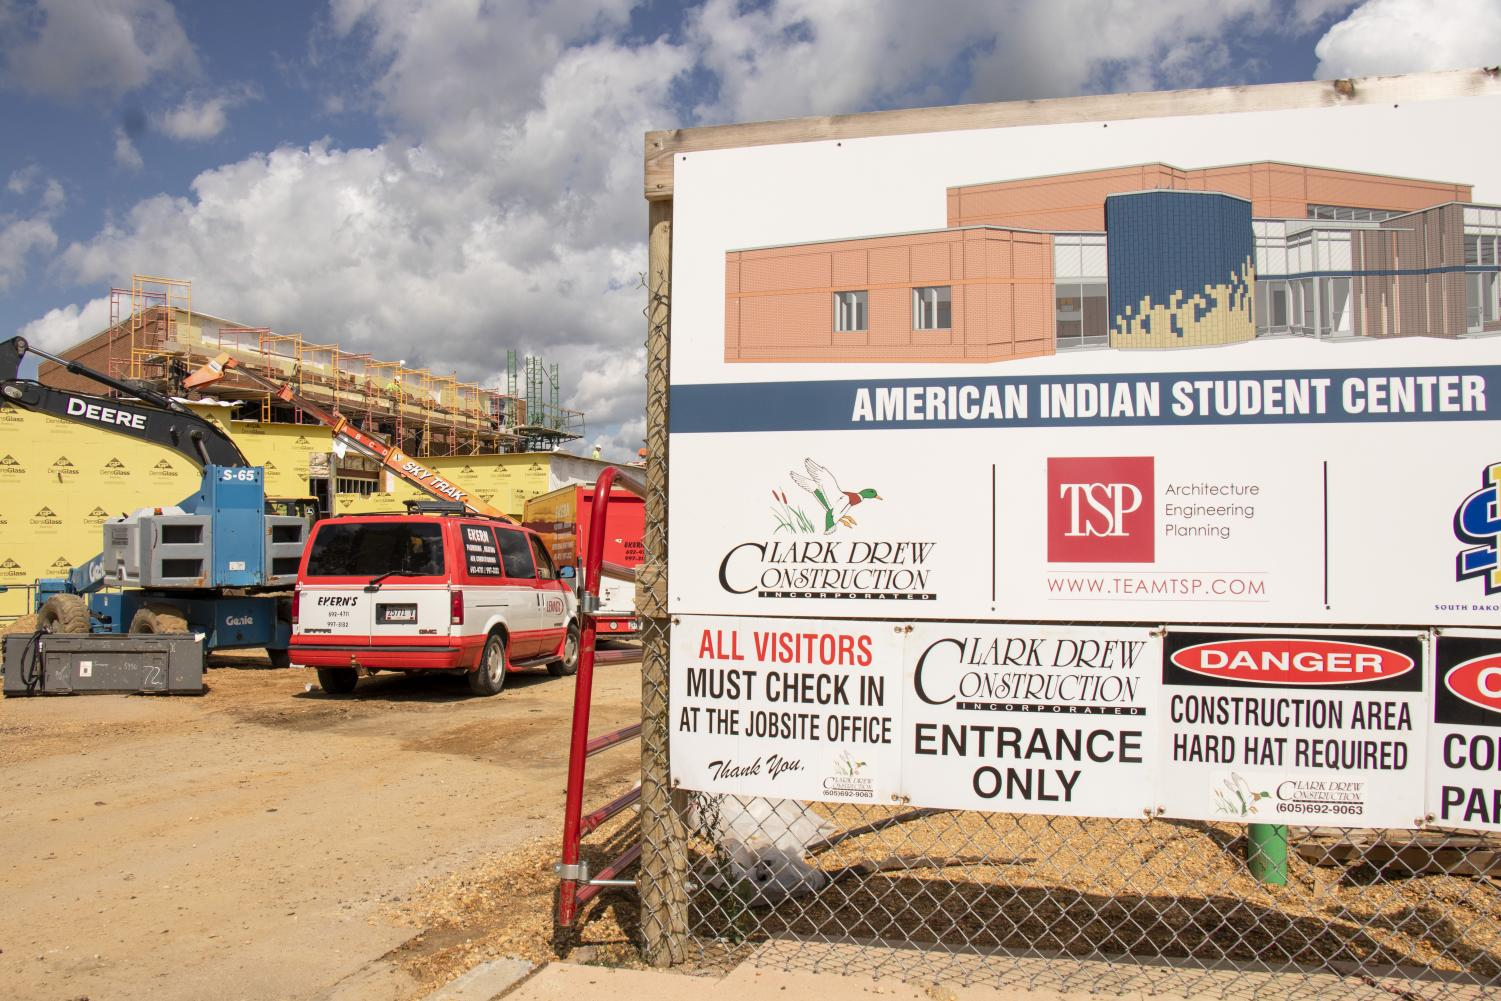 Construction work steadily continues after a long summer on campus. Progress is being made on The American Indian Student Center, which aims to increase diversity at South Dakota State University.